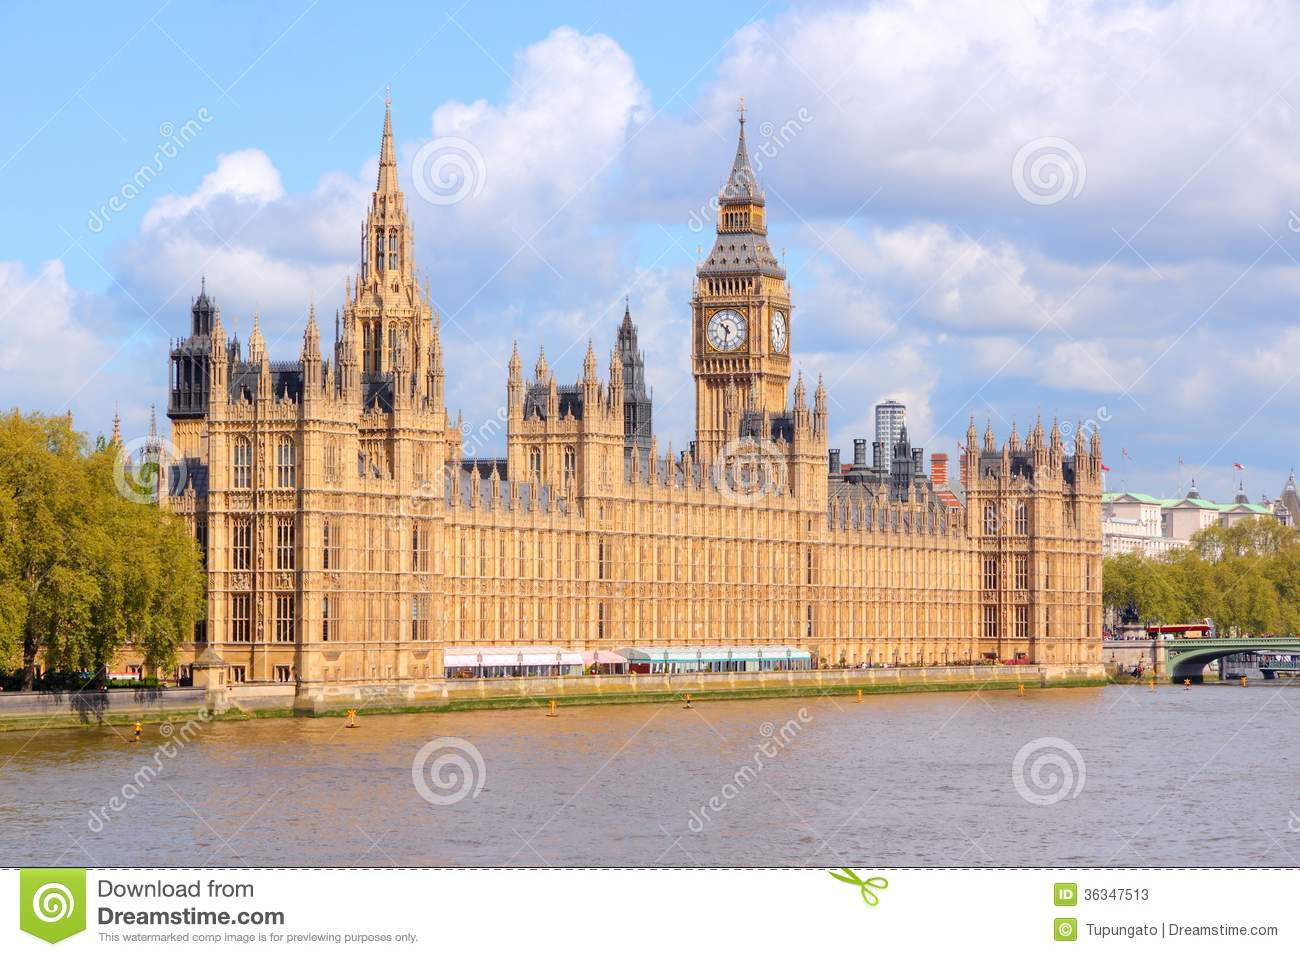 Palace of westminster stock photos image 36347513 for Parliament site